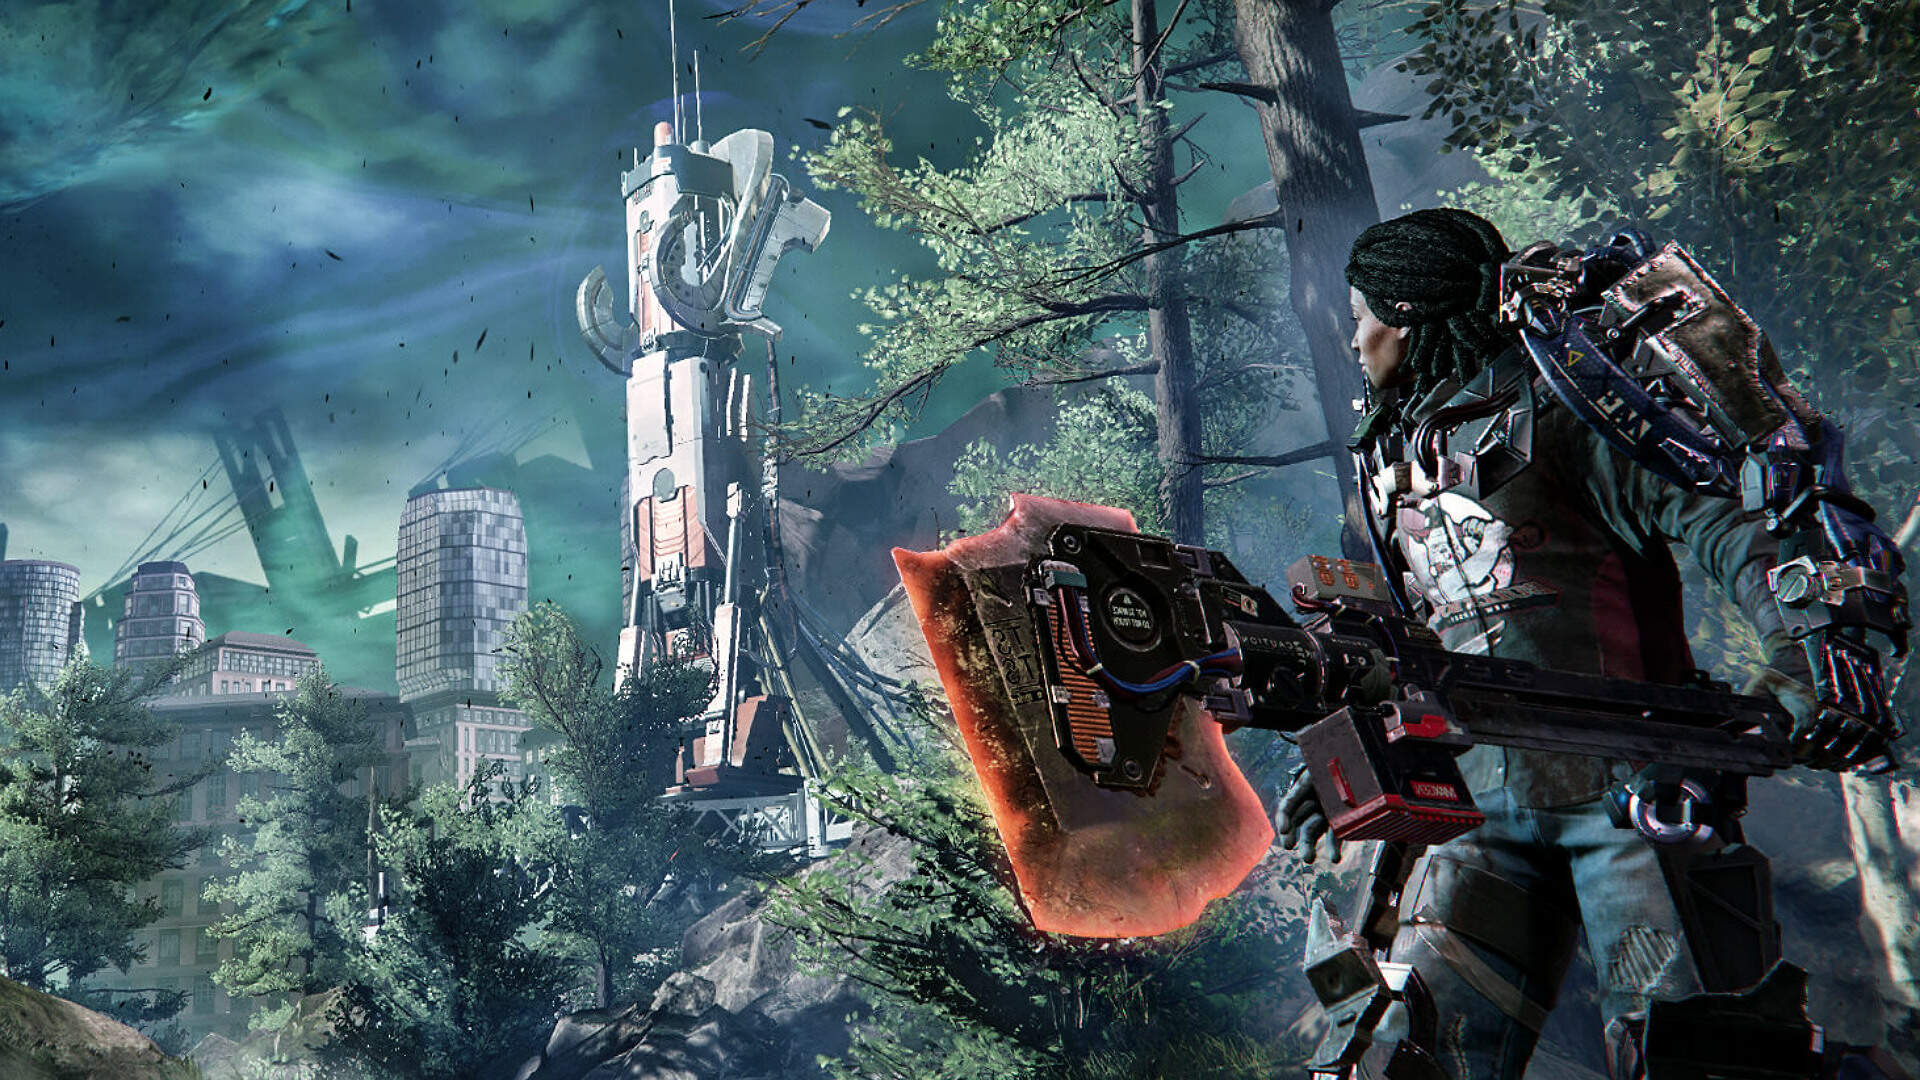 The Surge 2 Review: Deck 13 Takes a Proper Step Out of From Software's Shadow